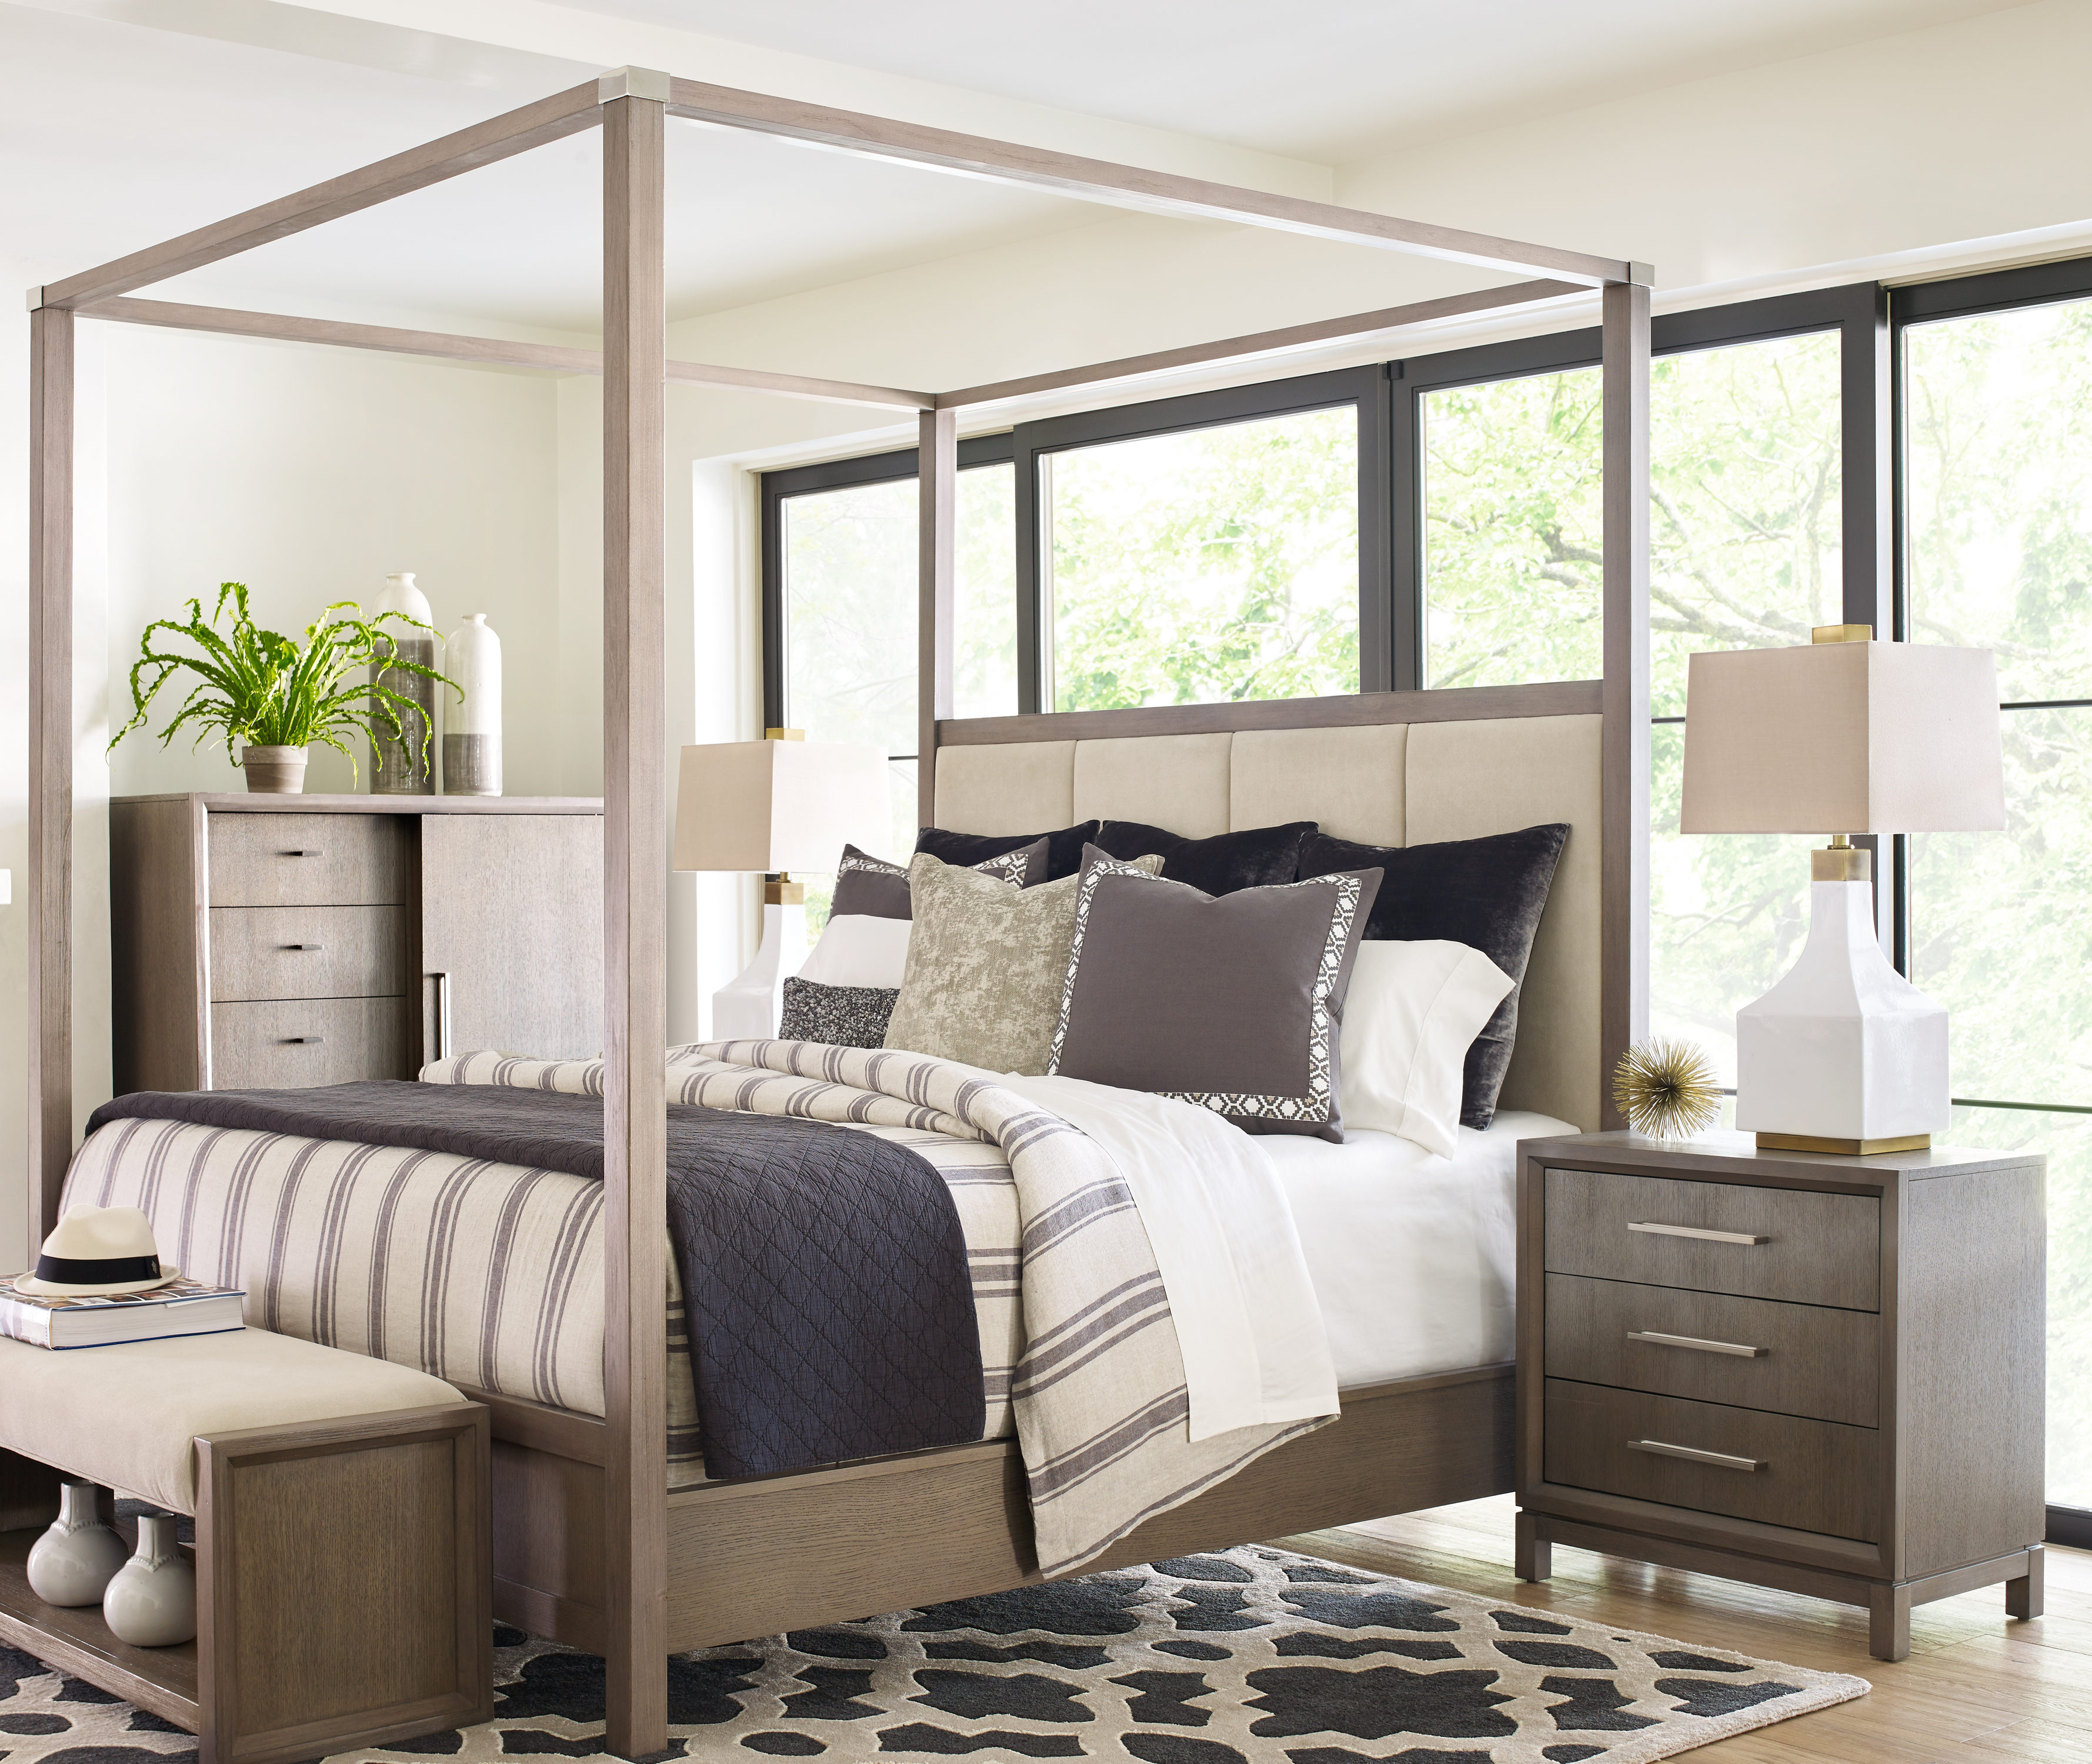 Legacy Furniture Highline by Rachael Ray Ivory Greige 2pc Bedroom Set with  Queen Poster Canopy Bed